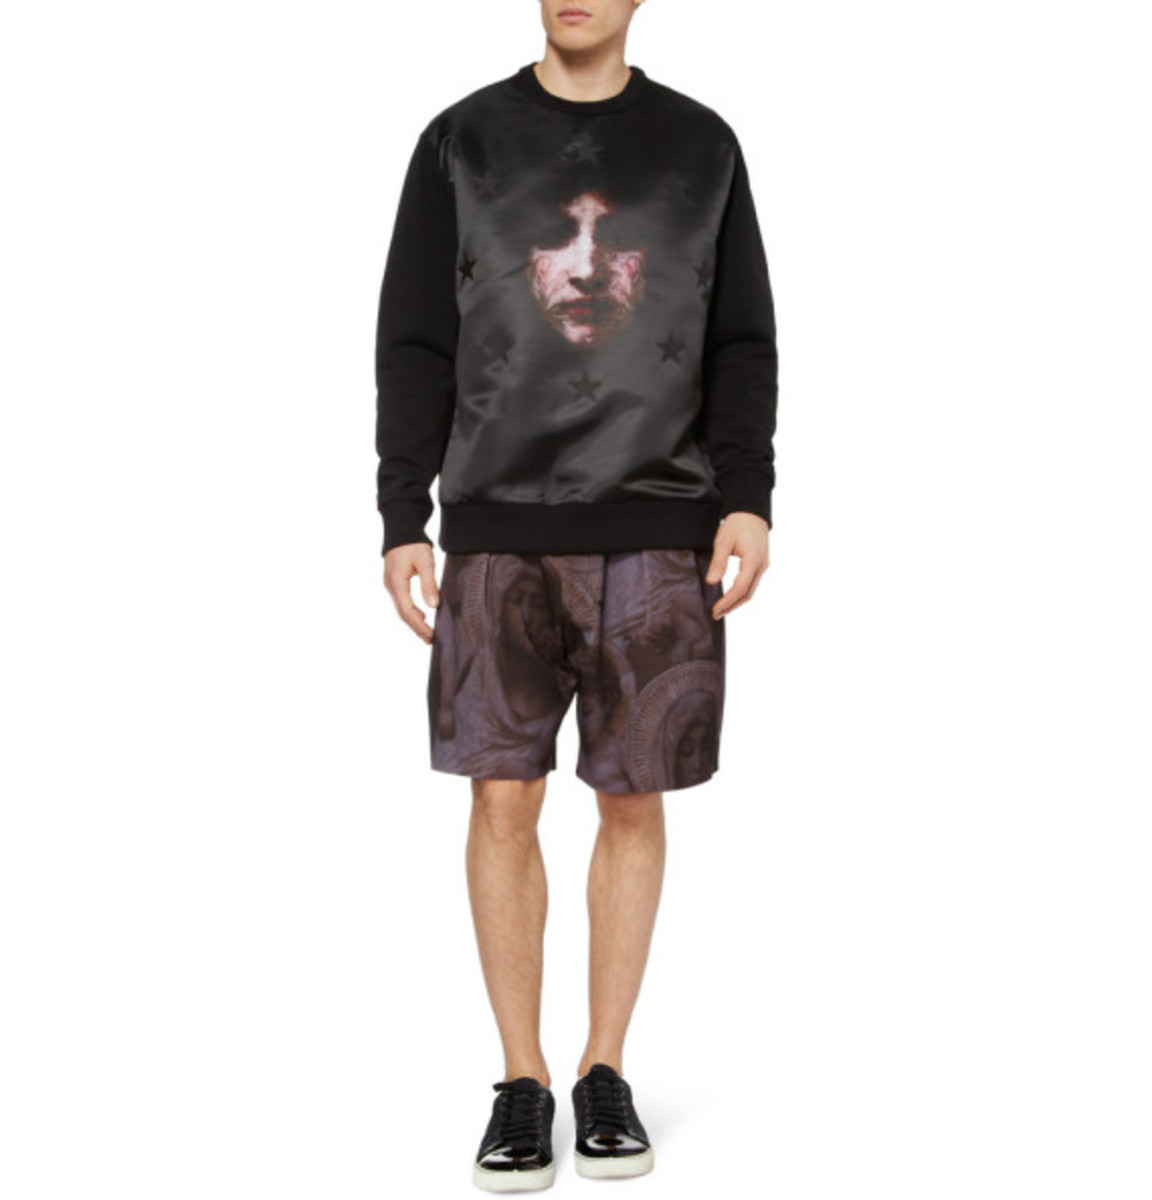 givenchy-madonna-printed-satin-and-jersey-sweatshirt-07